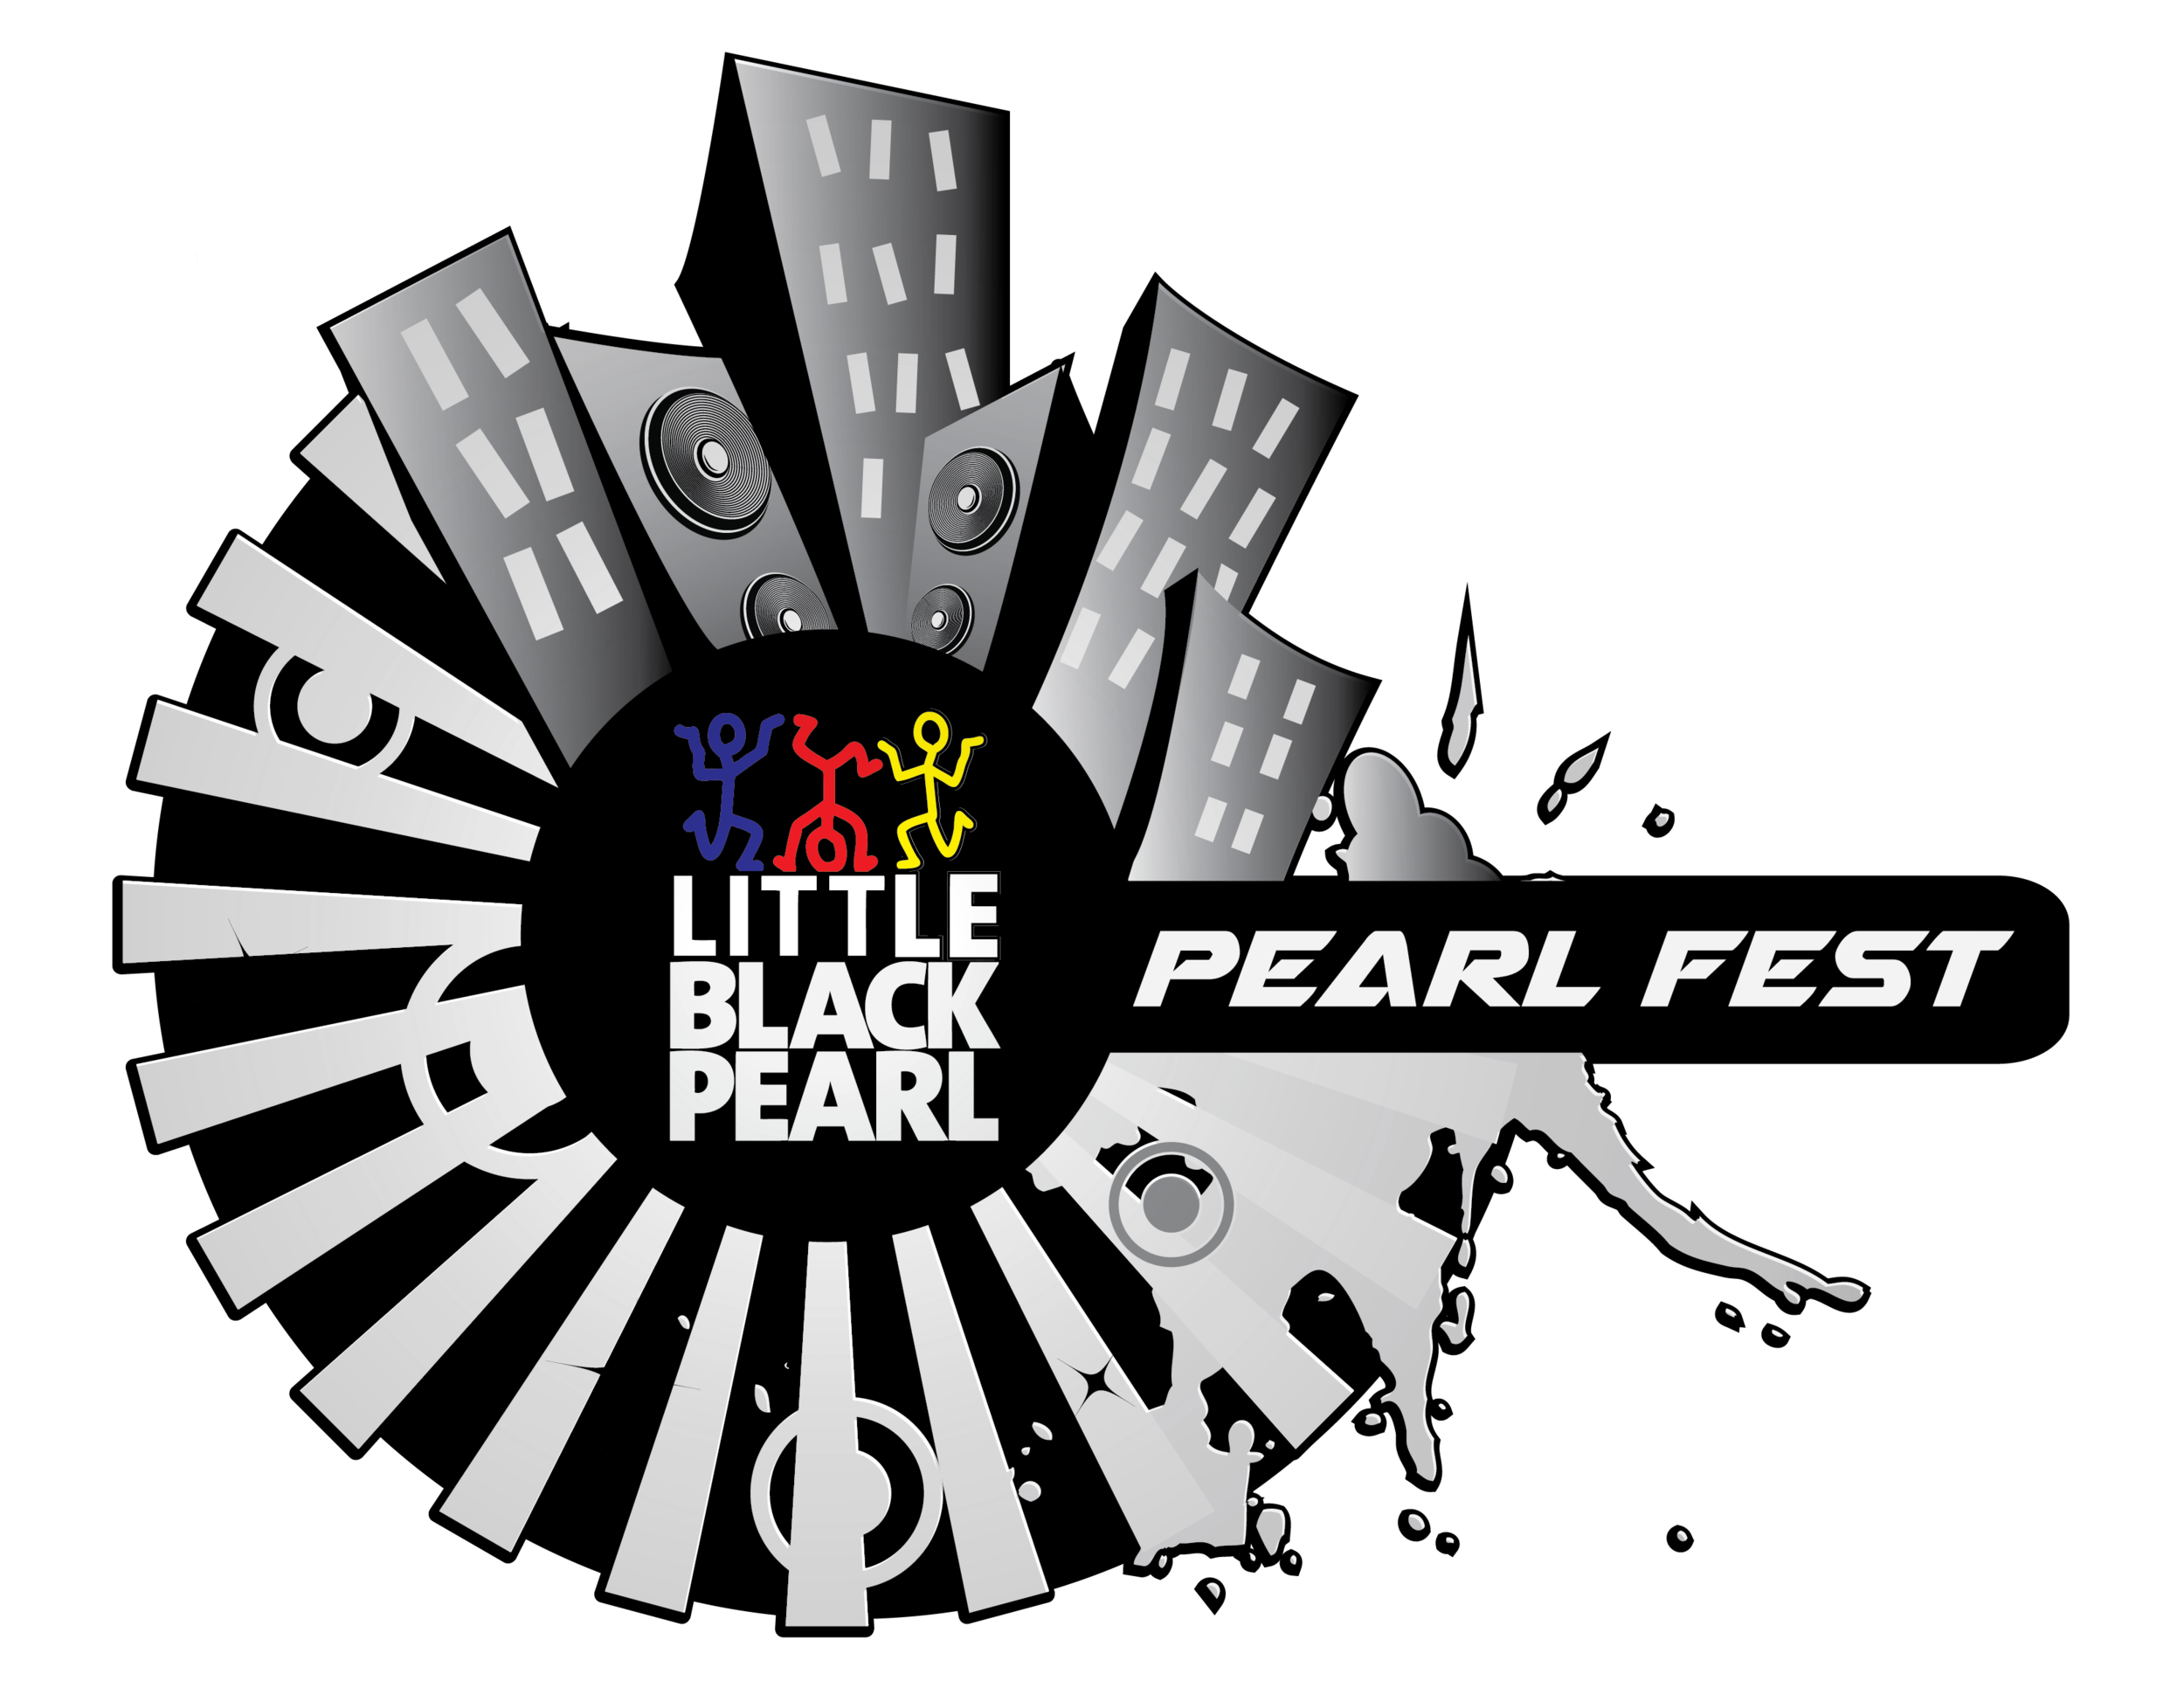 pearlfest logo2019-01.png